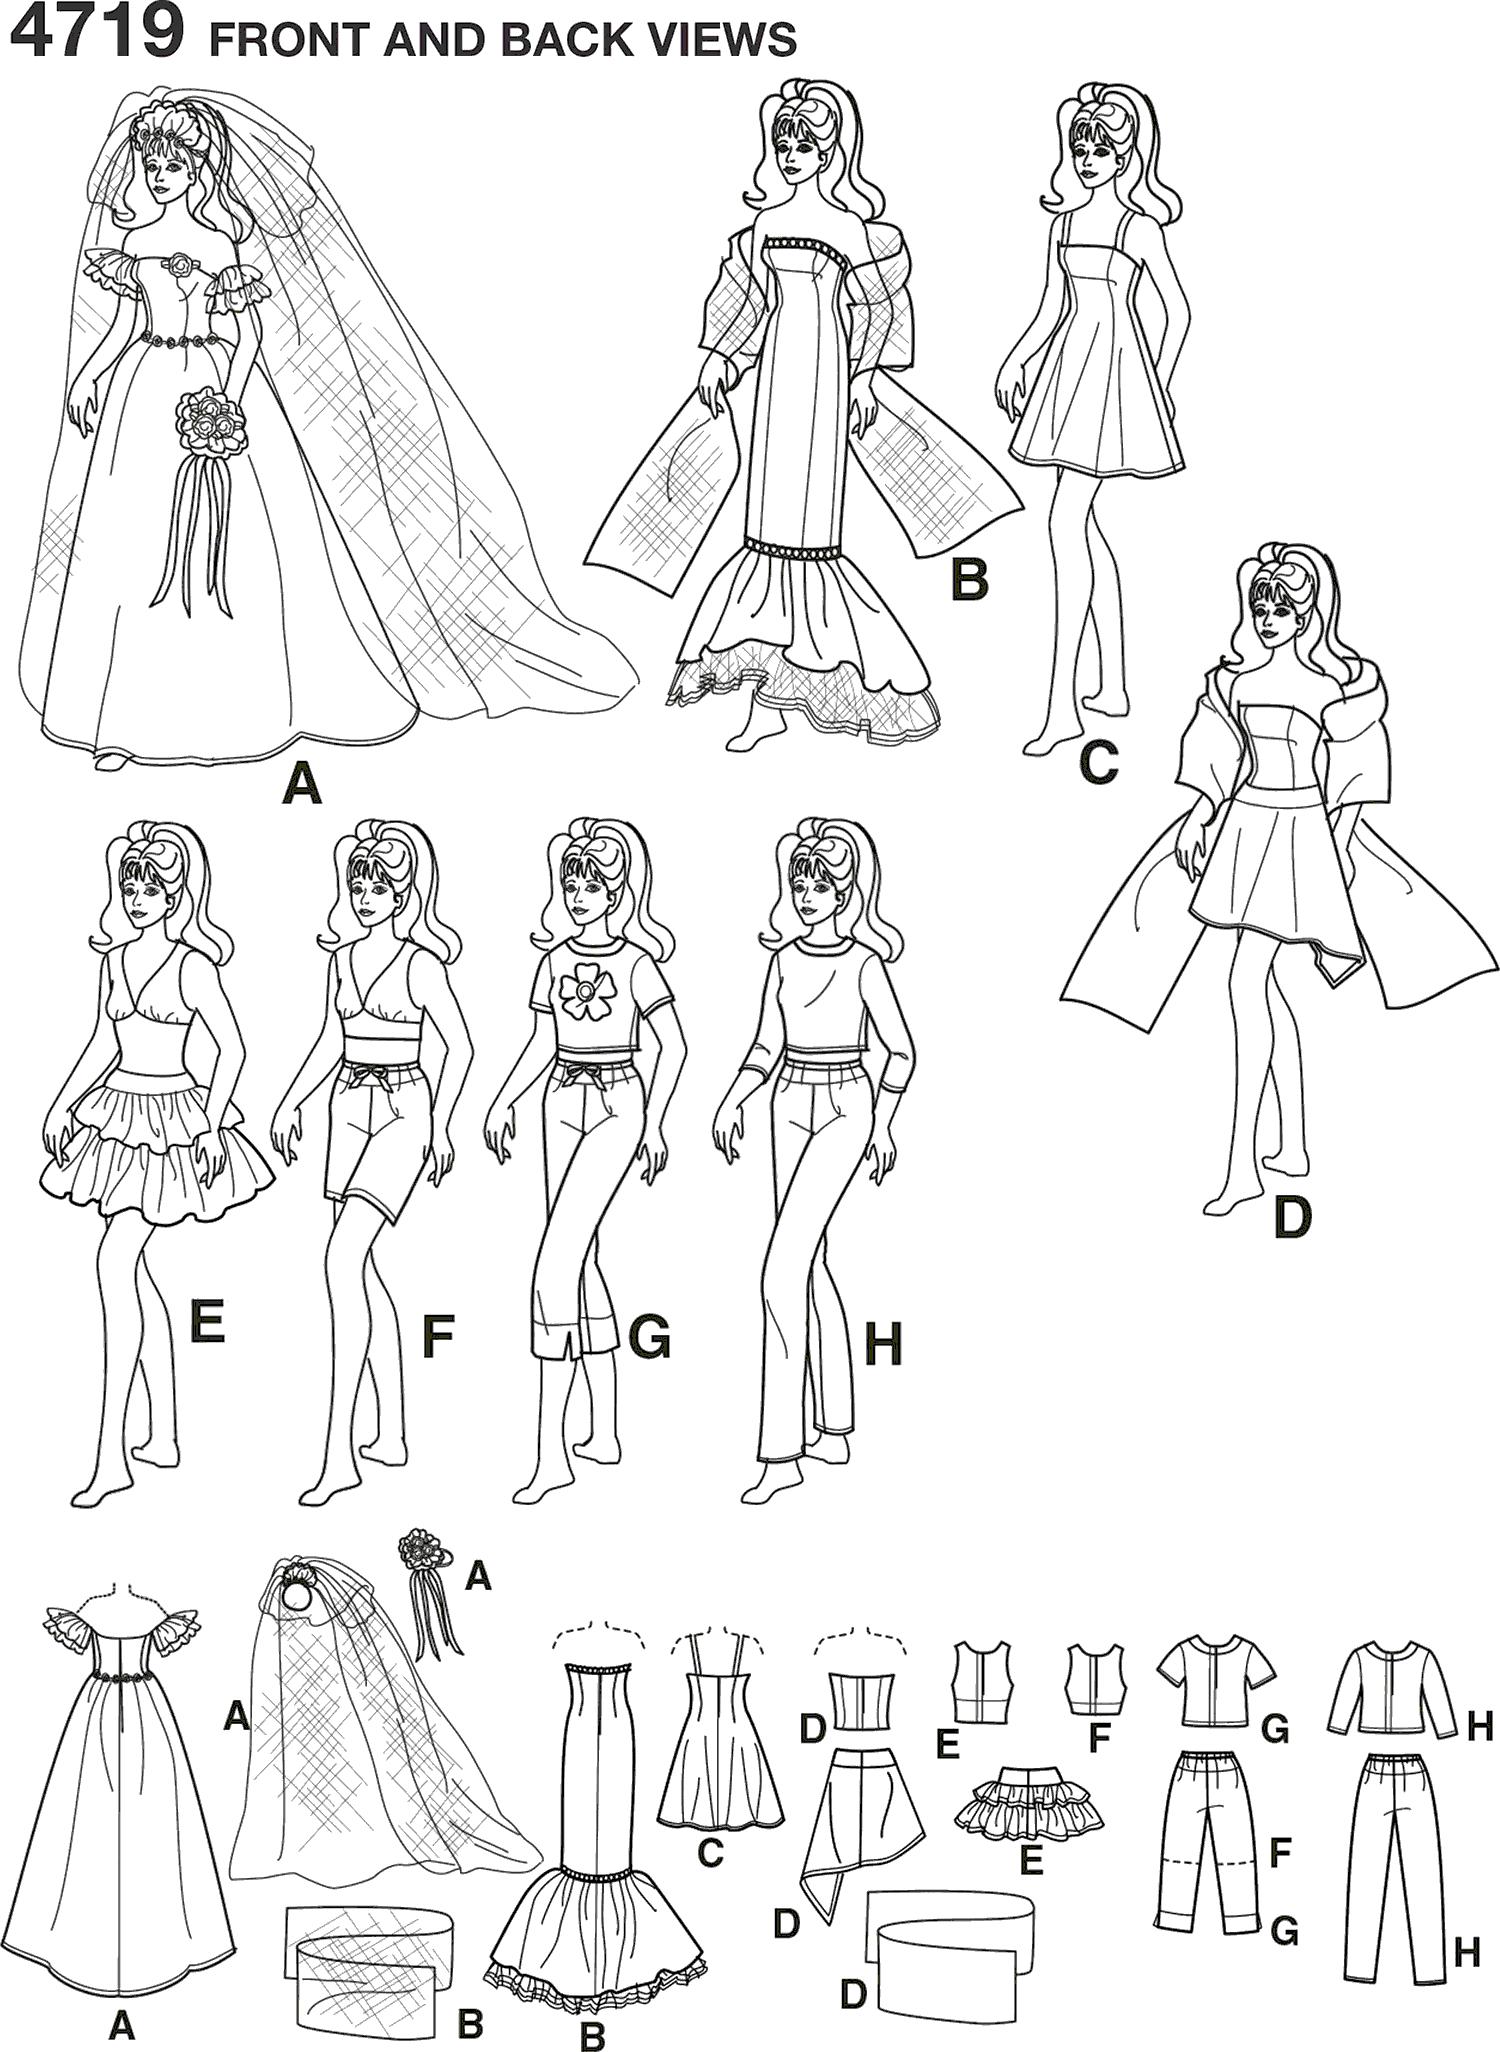 Simplicity Pattern 4719 Doll Clothes Line Art From Patternsandplains.com